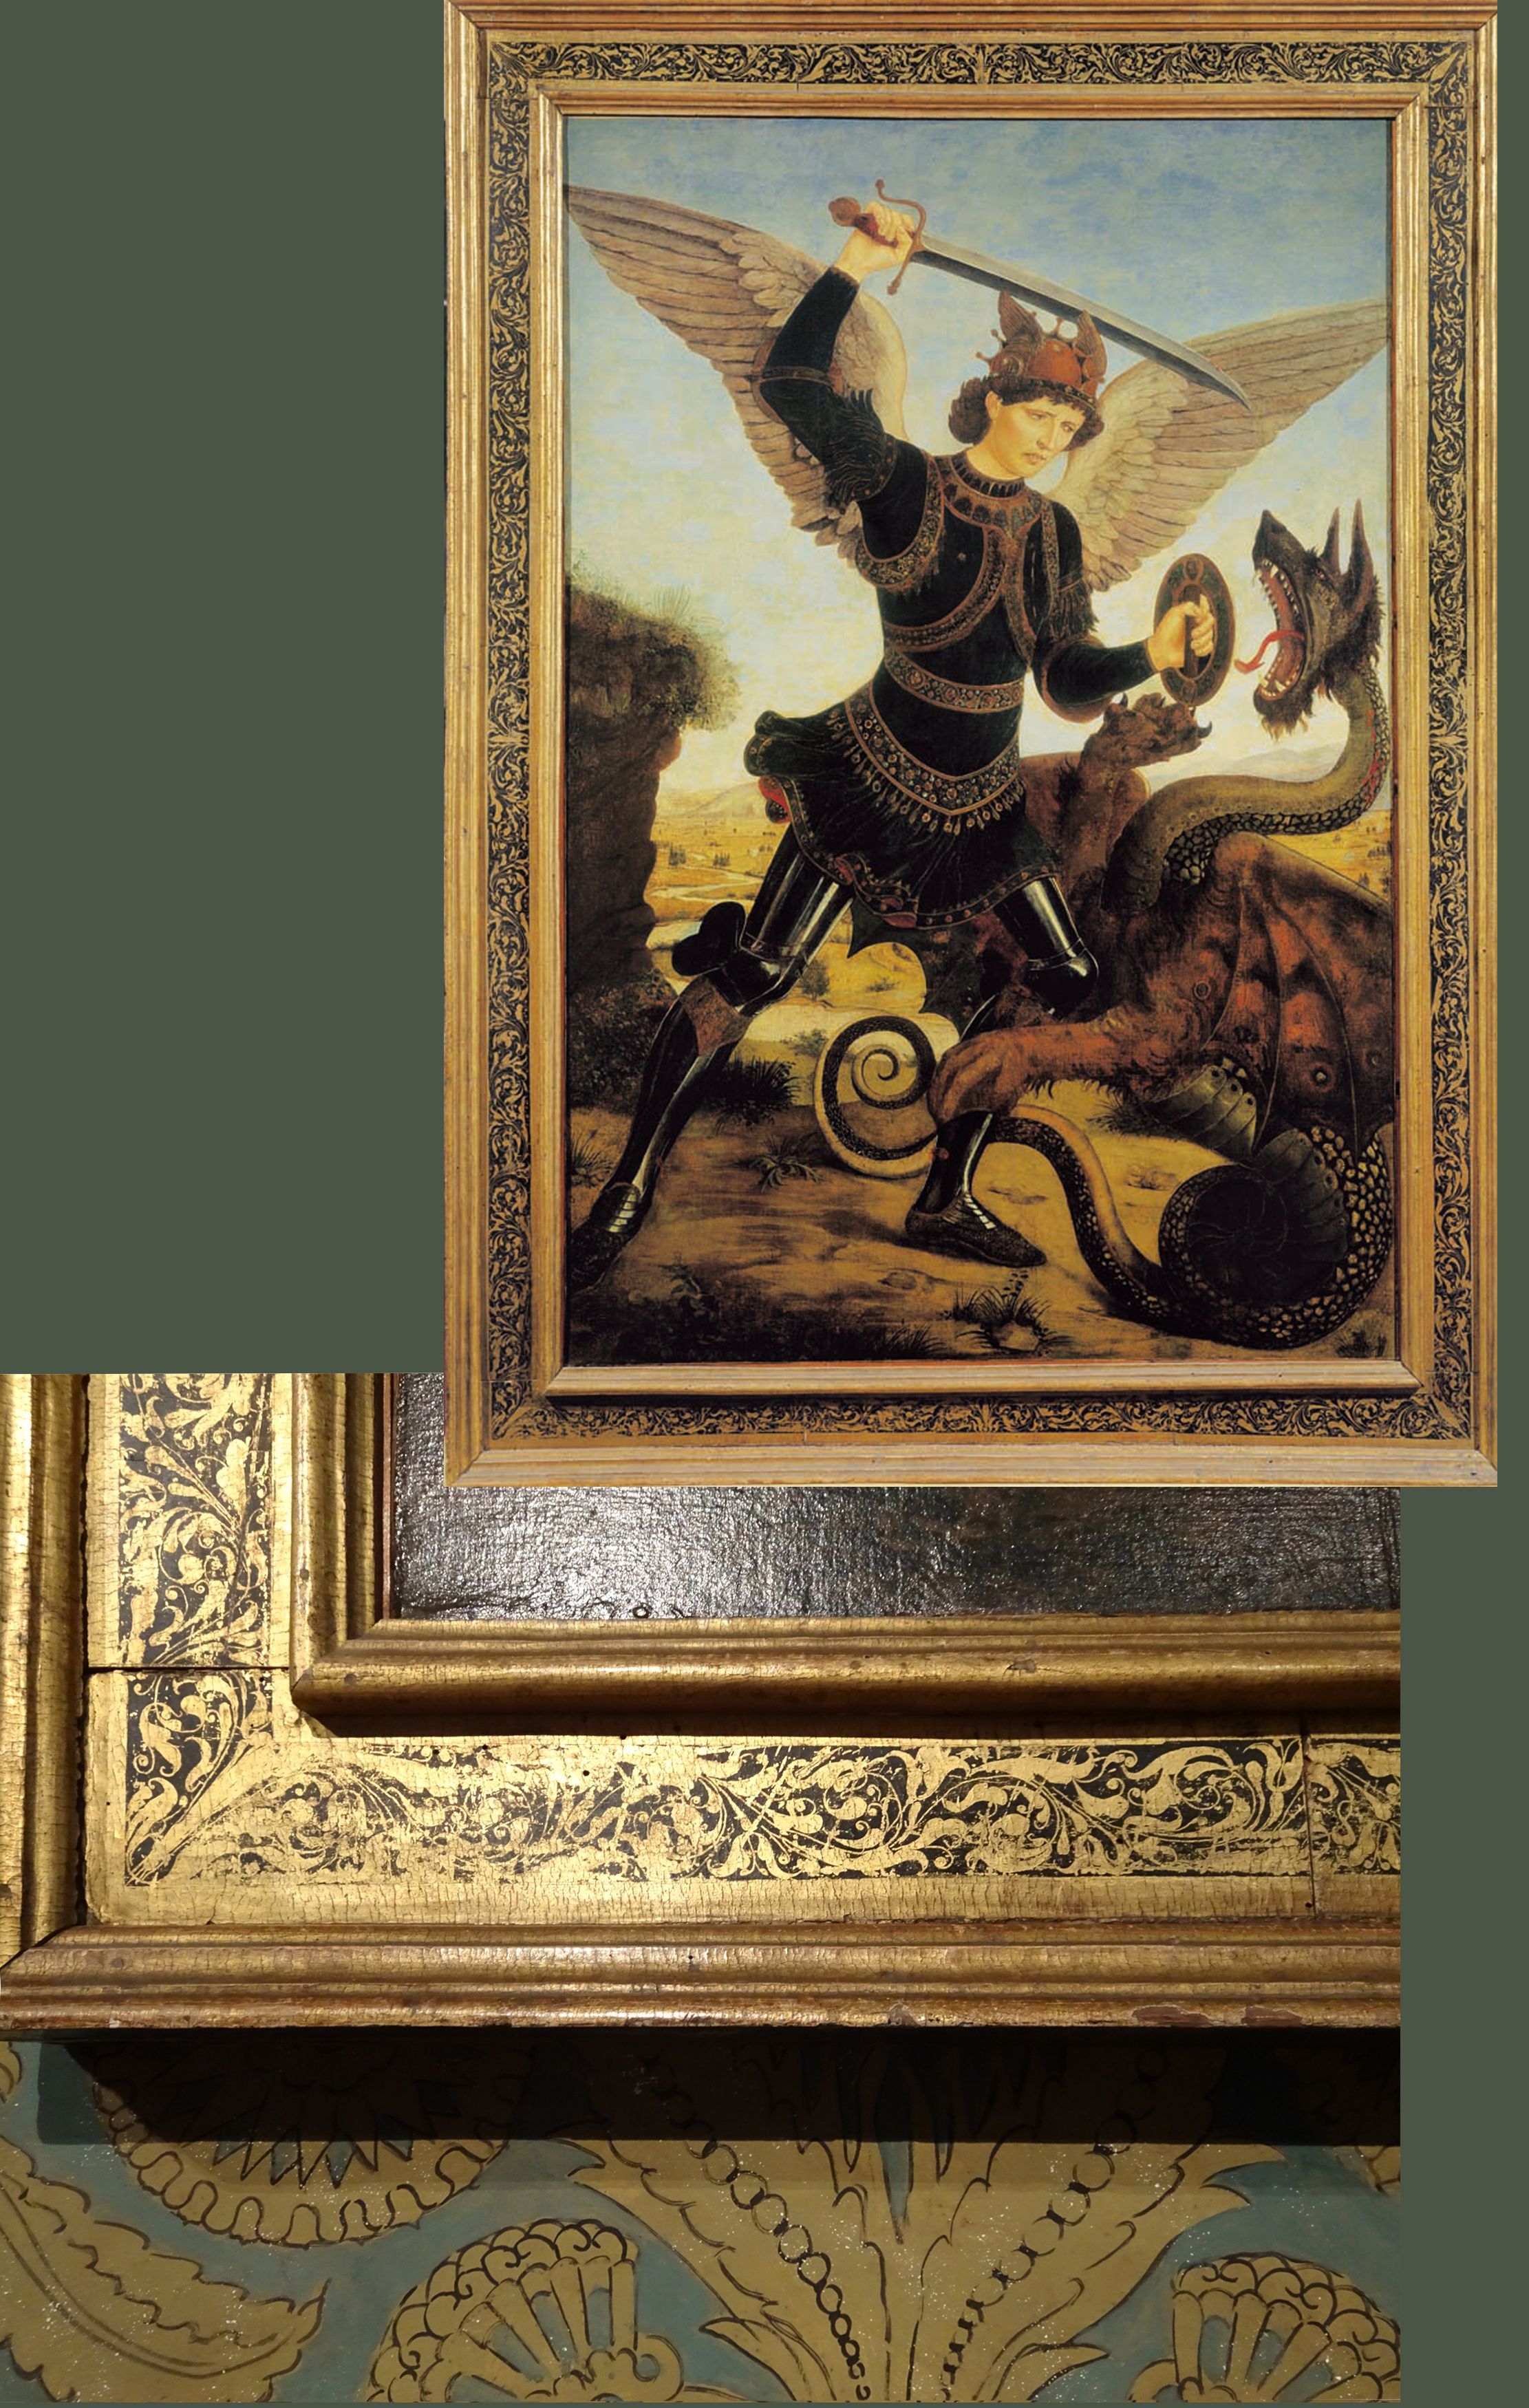 Art Frame Source 18543 In The Marias Framed Art: Articles, Interviews And Reviews To Do